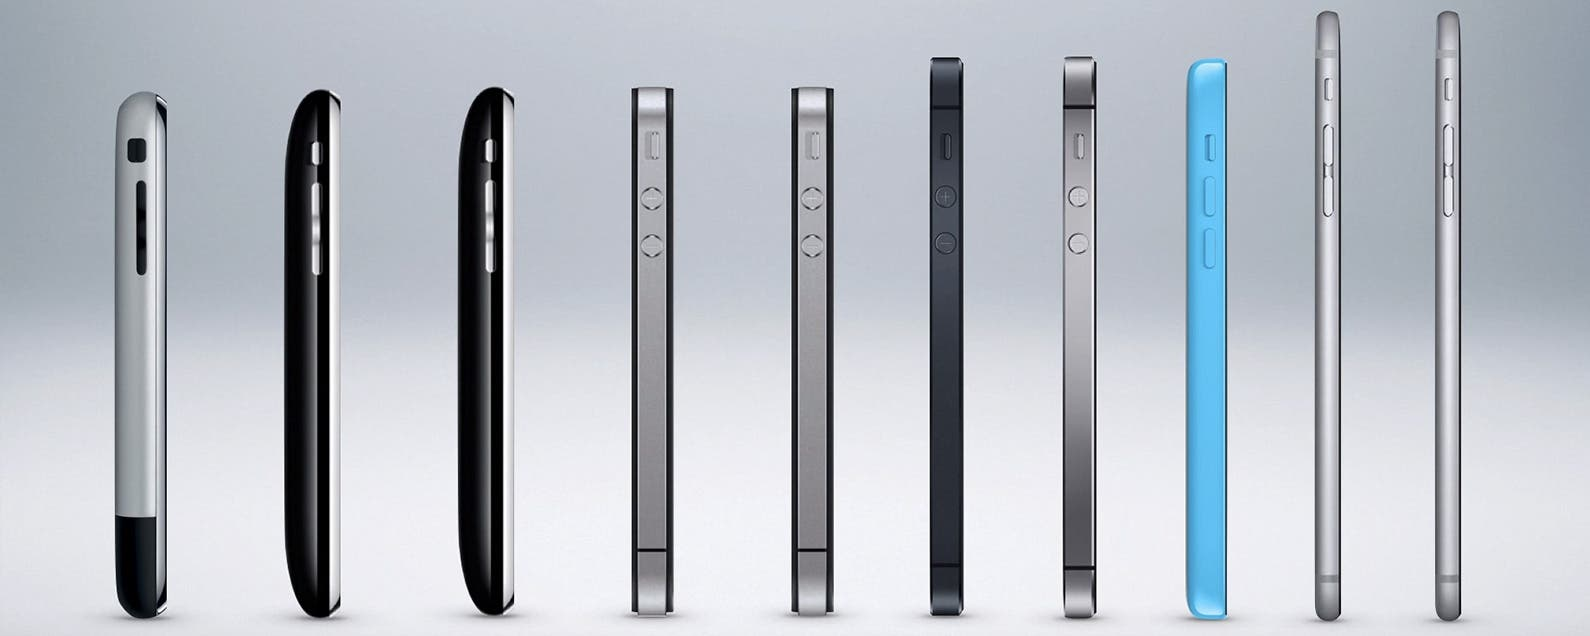 The Evolution of the iPhone: Every Model from 2007-2020